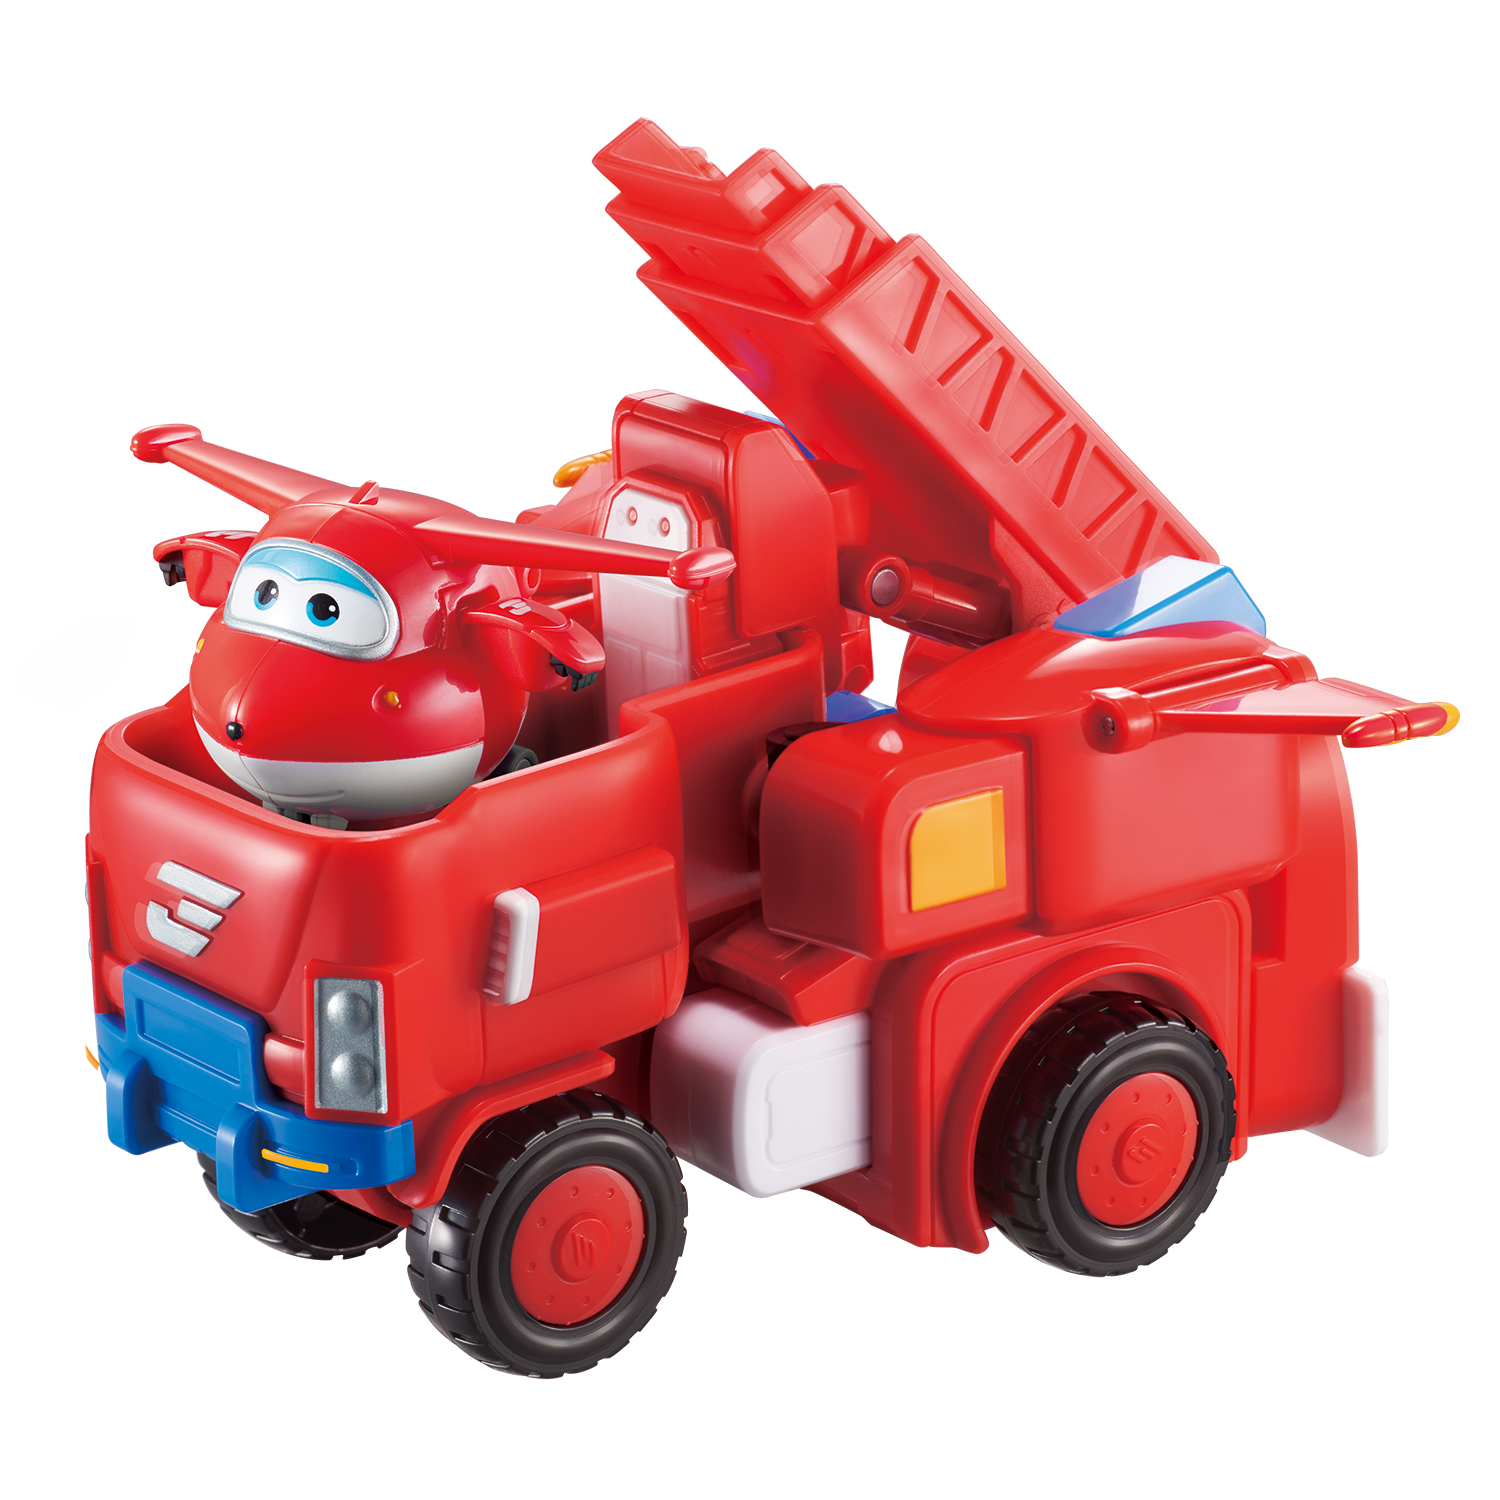 Авто-трансформер Super Wings Джетта фото